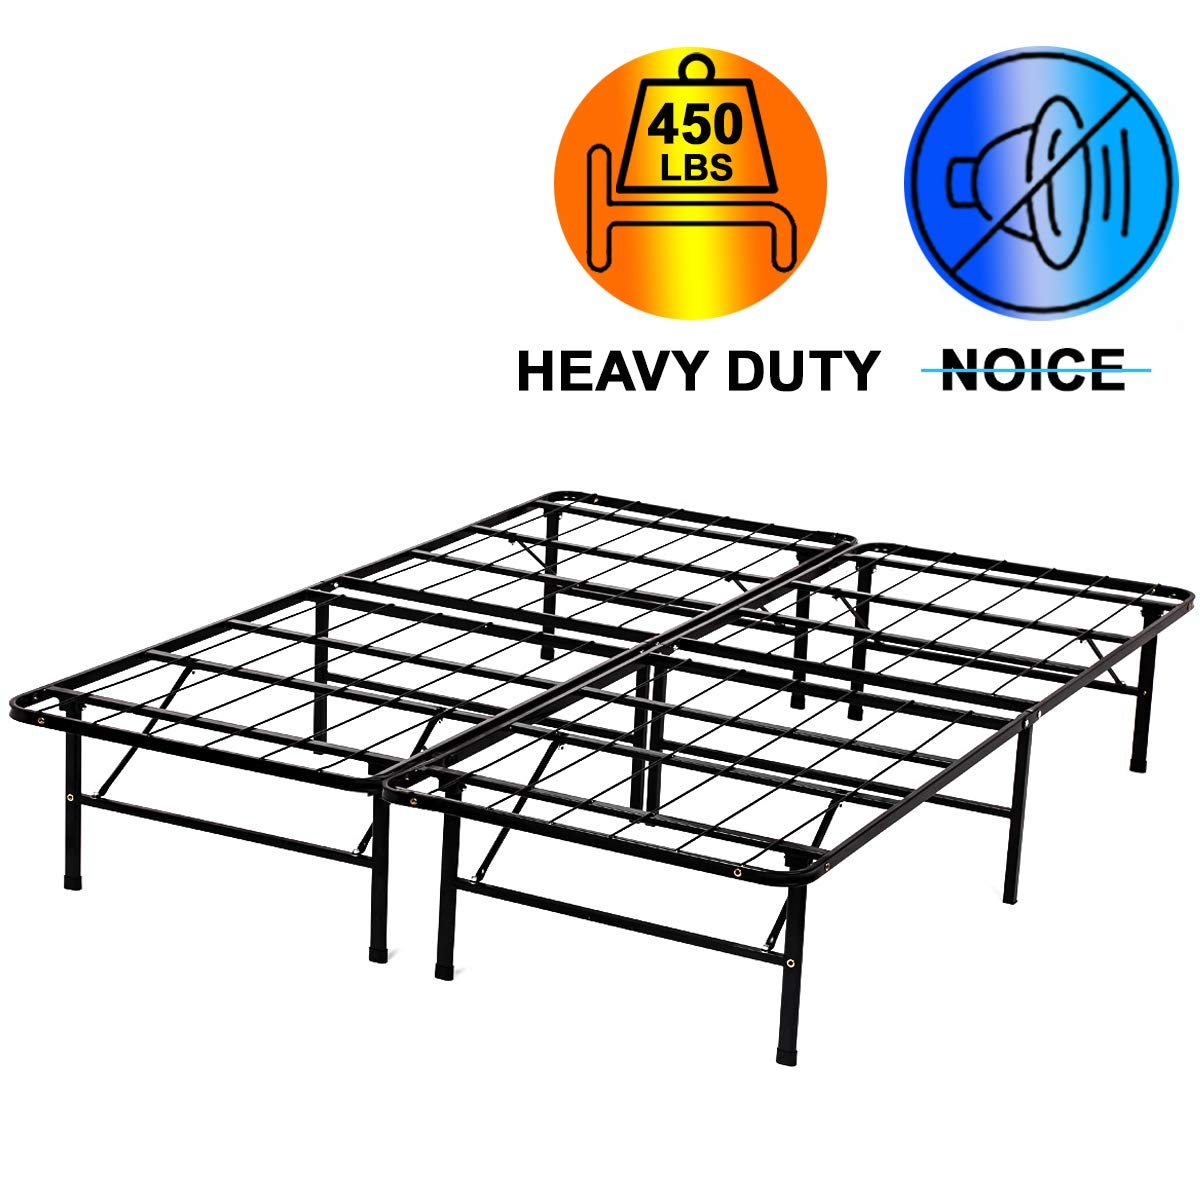 Queen Bed Frame Queen Size 14 Inch Mattress Foundation Box Spring Replacement Heavy Duty Steel Slat Noise-Free Easy Assembly,Black